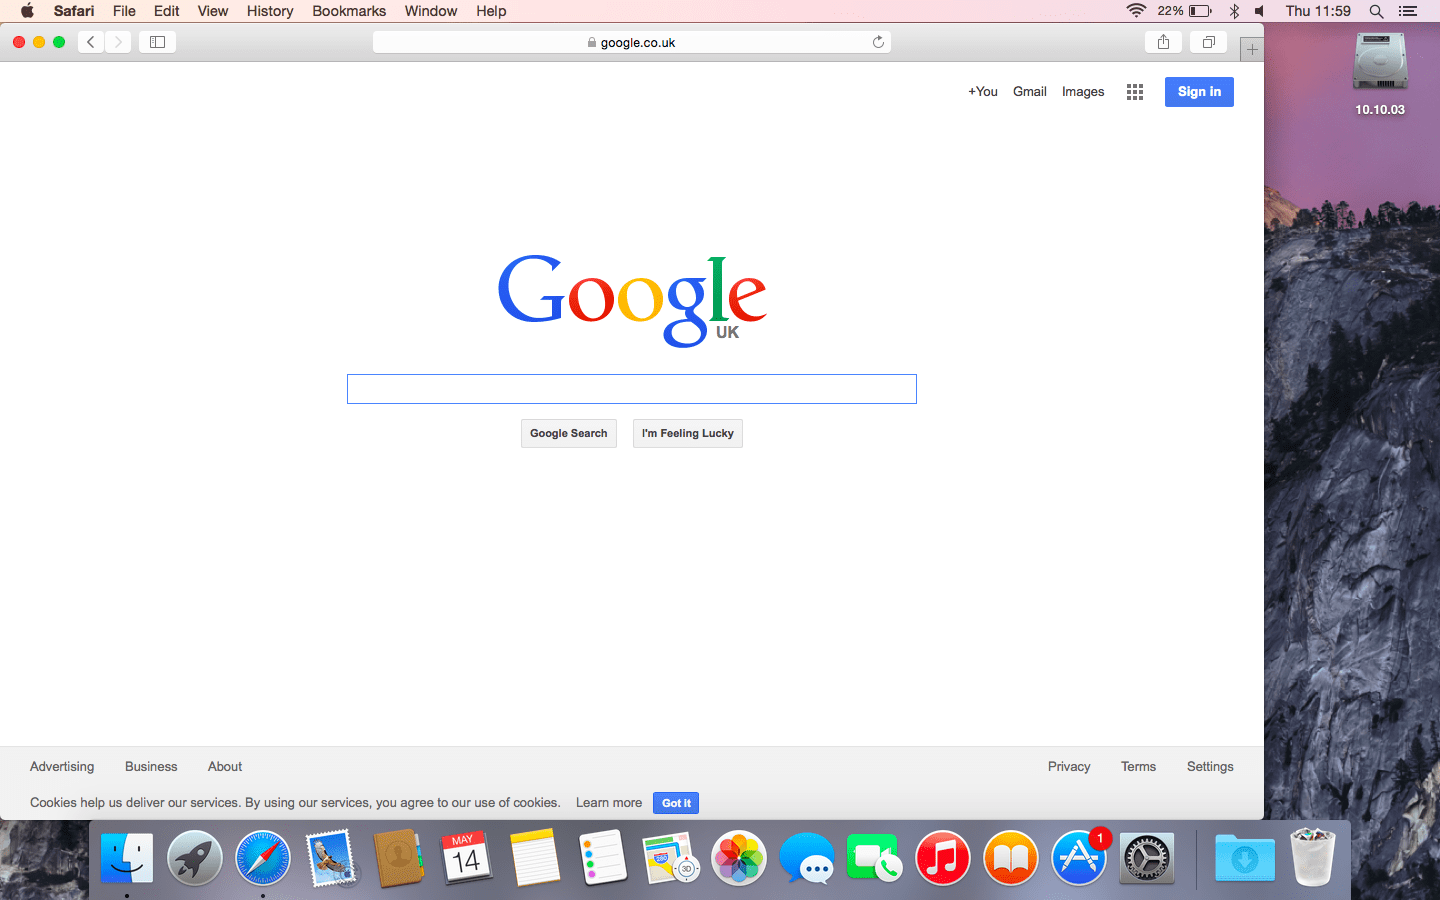 Window is enlarged after double clicking in OS X